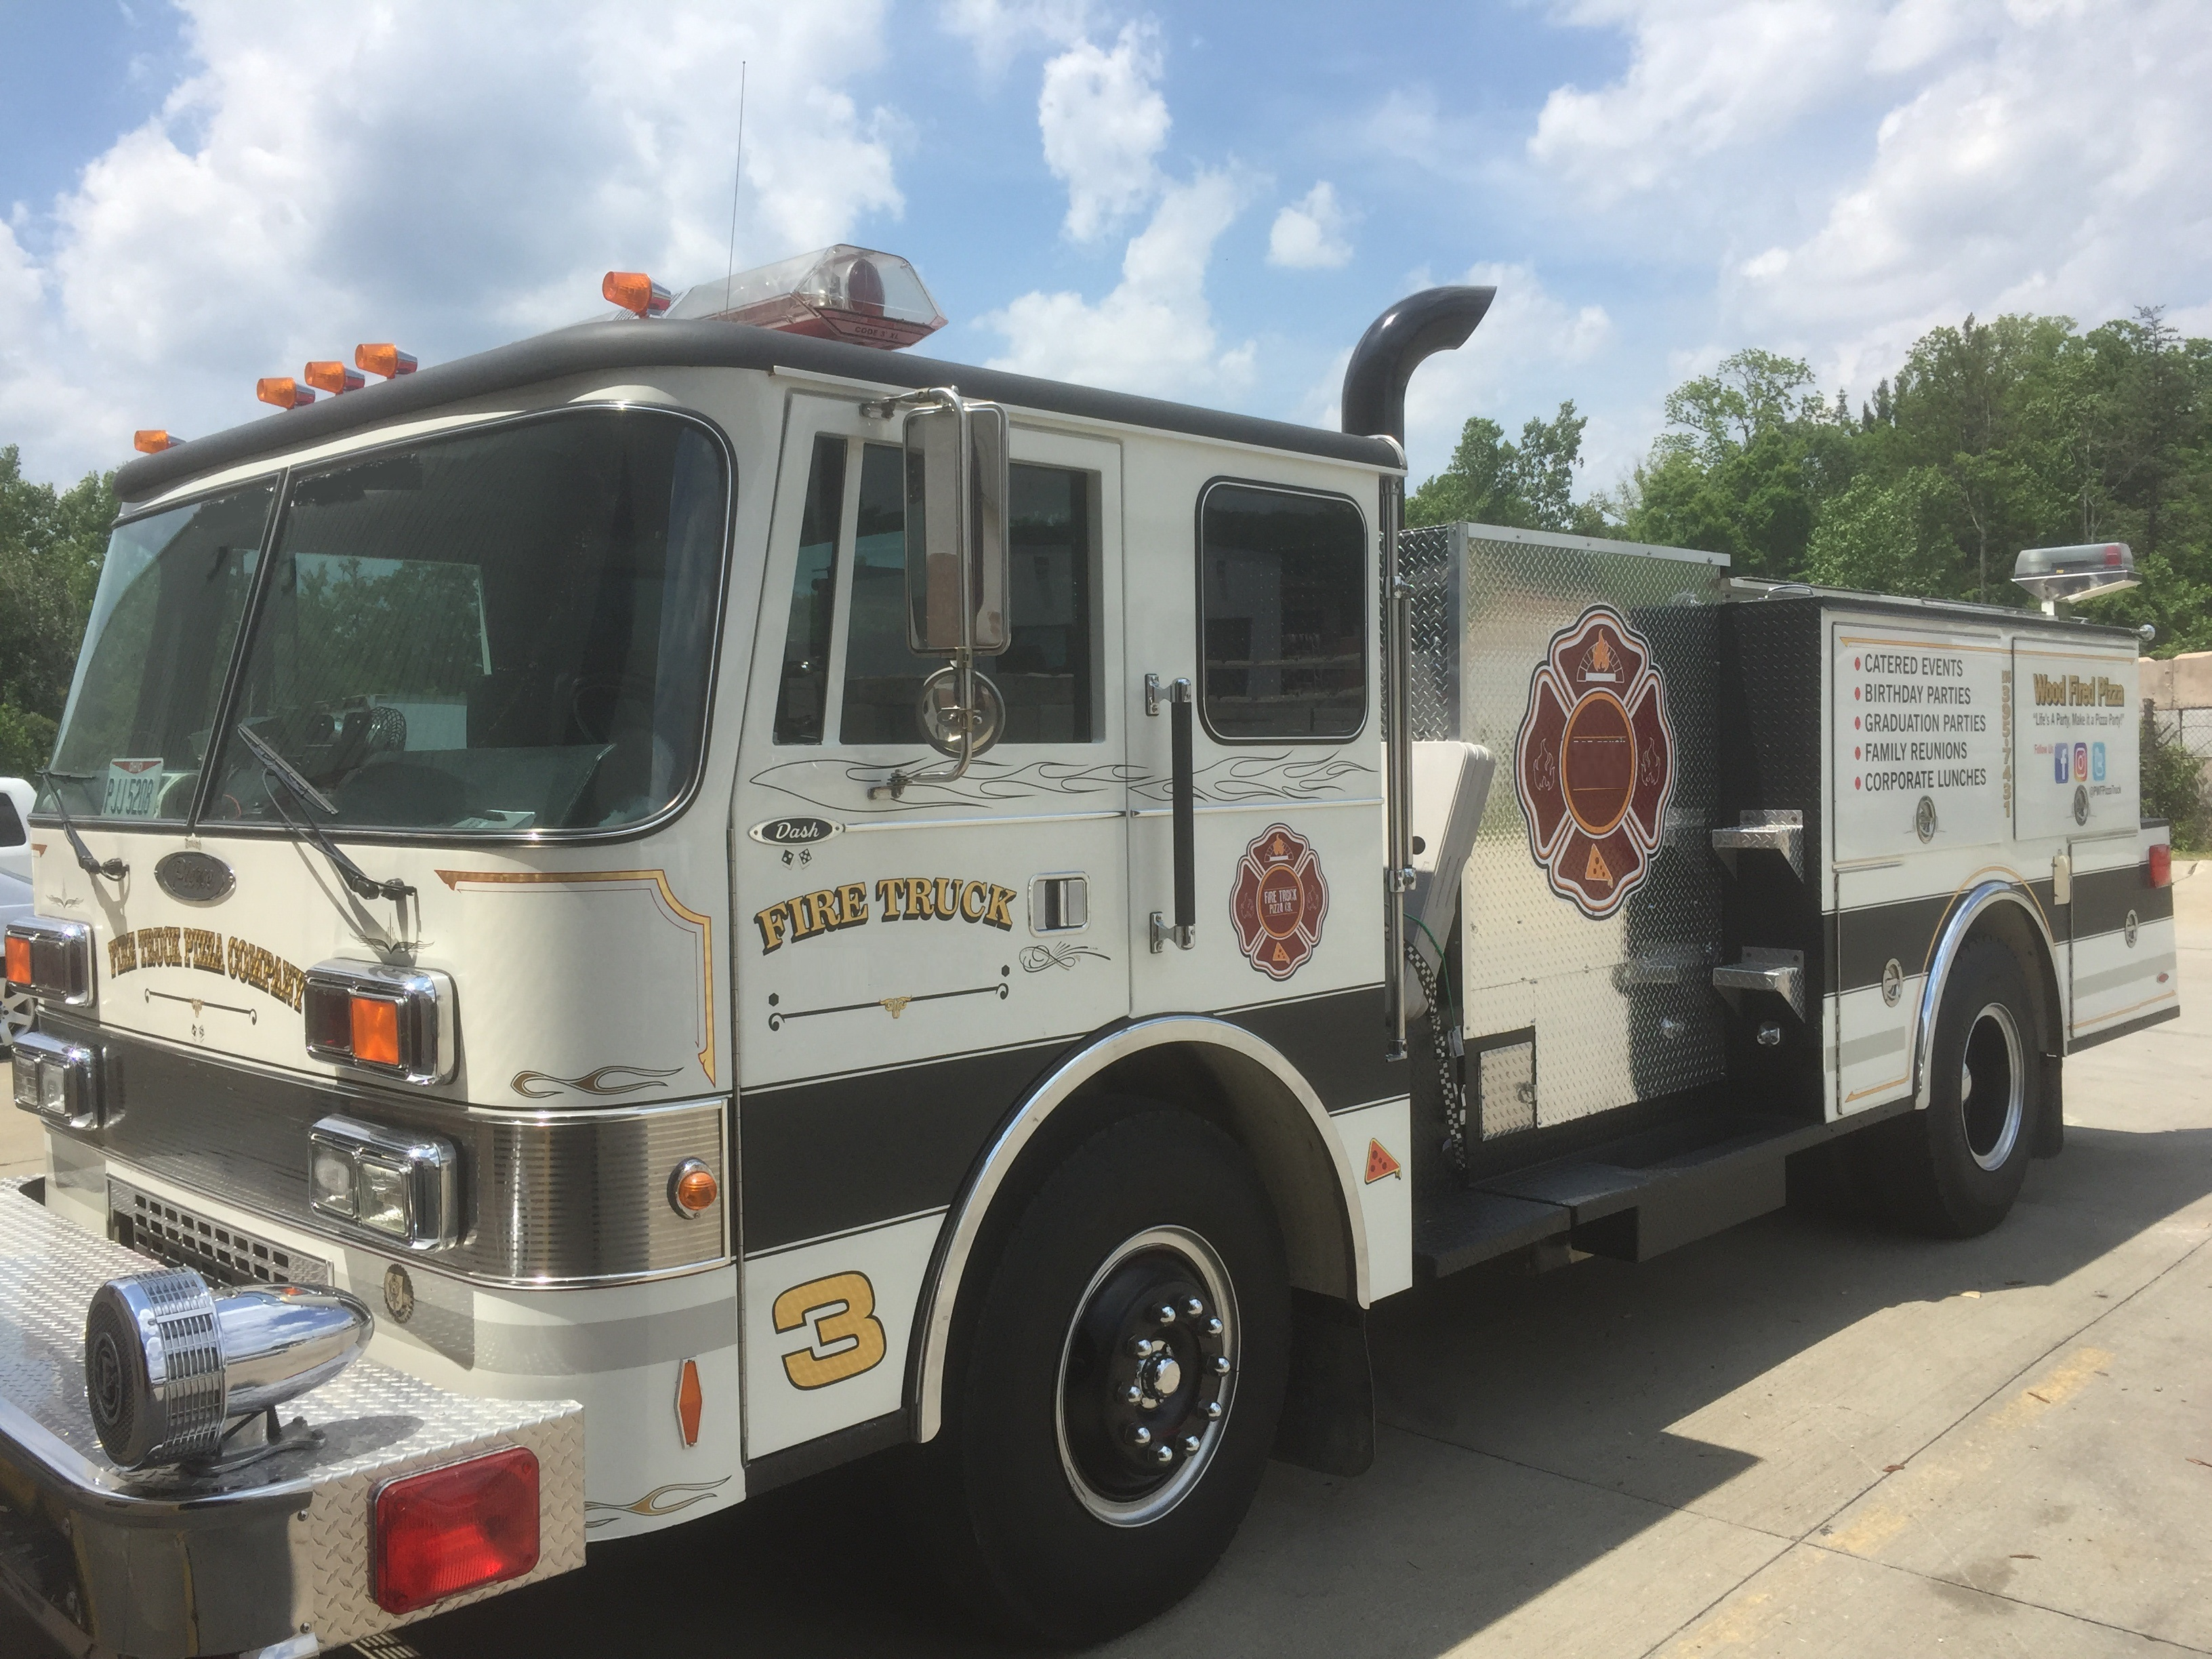 Food Sale: Fire Engine Food Truck W/ Pizza Oven! $65k